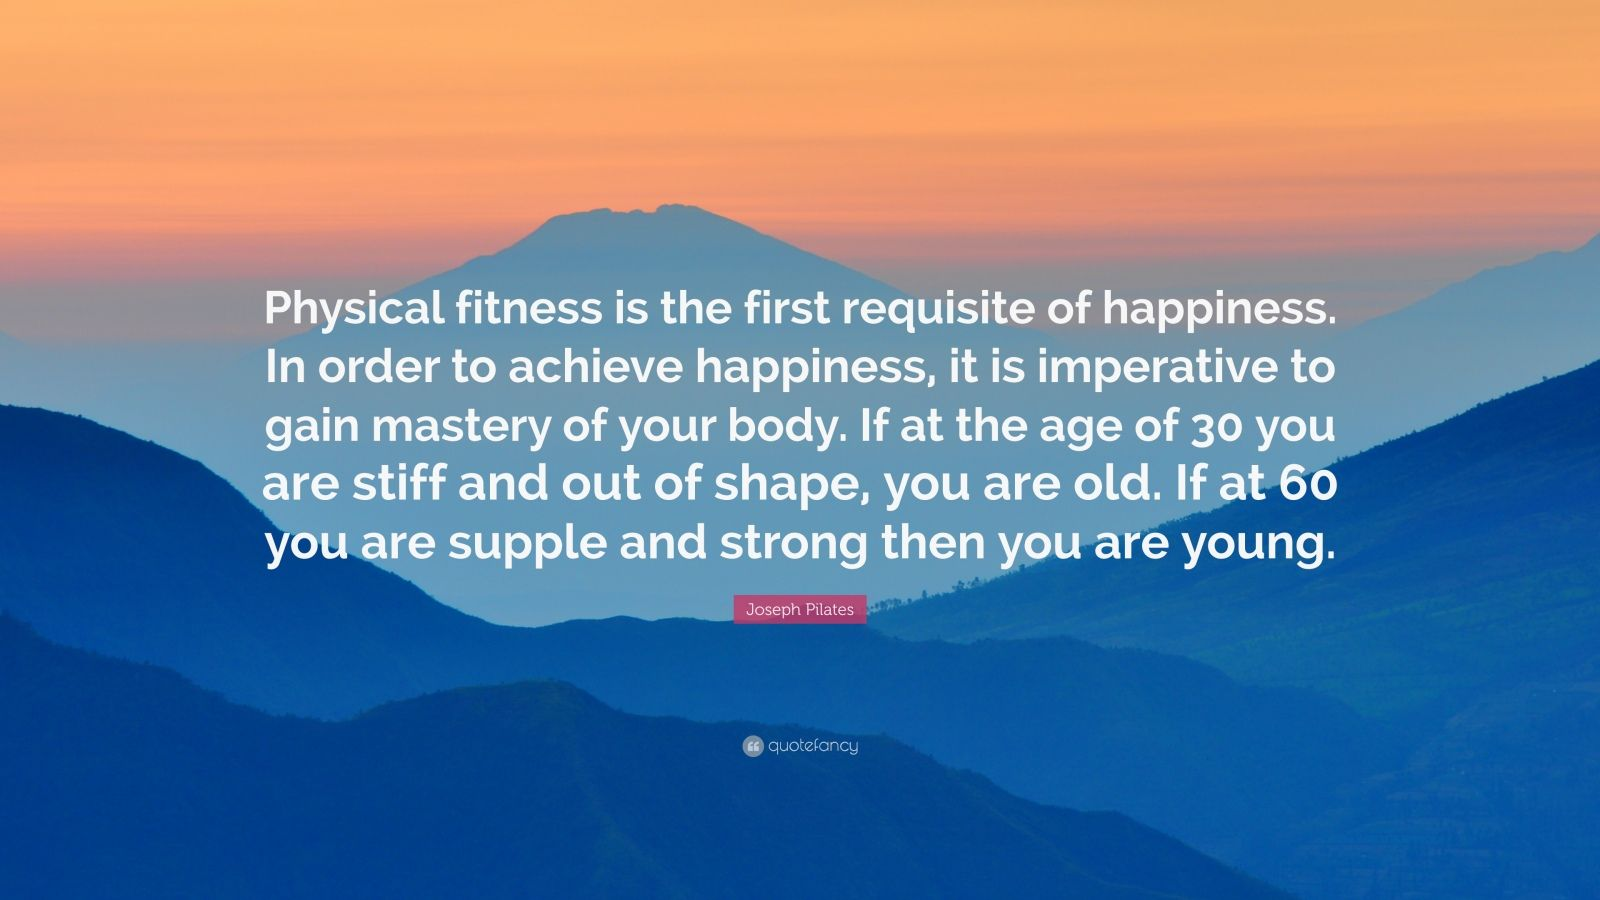 """Joseph Pilates Quote: """"Physical fitness is the first requisite of happiness. In order to achieve happiness, it is imperative to gain mastery of your body. If at the age of 30 you are stiff and out of shape, you are old. If at 60 you are supple and strong then you are young."""""""